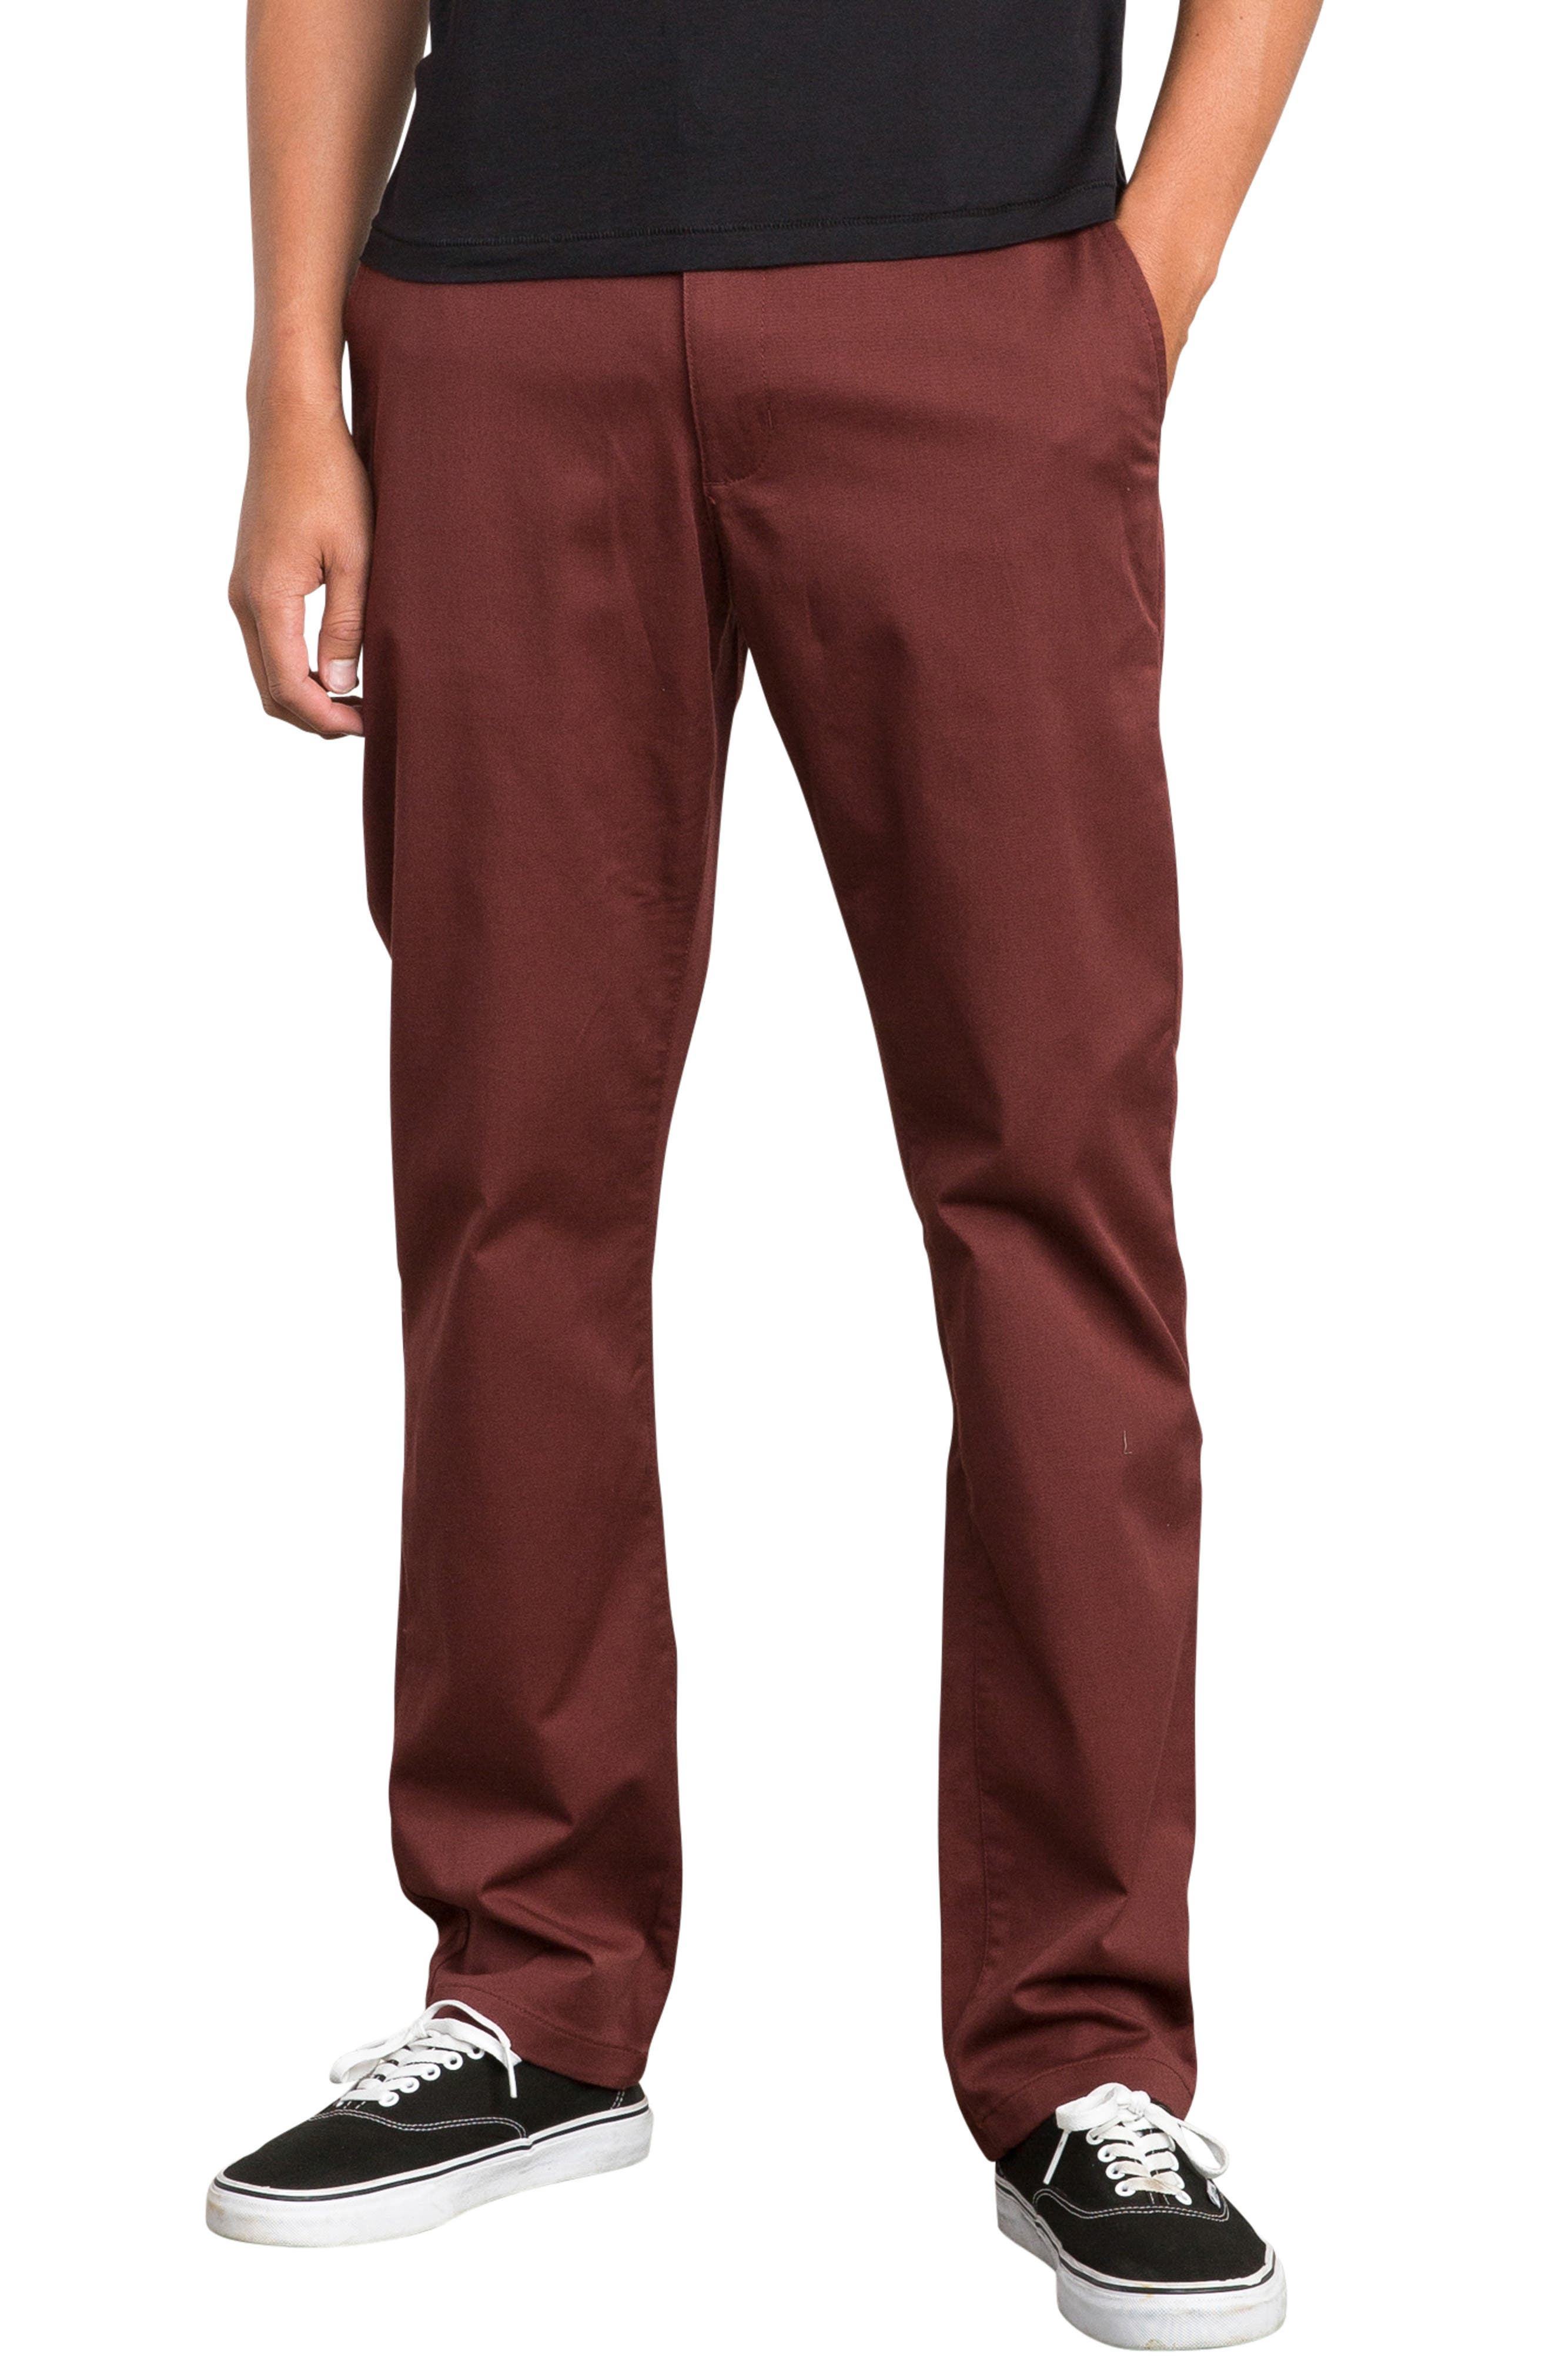 'The Week-End' Slim Straight Leg Stretch Twill Chinos,                             Main thumbnail 1, color,                             BORDEAUX